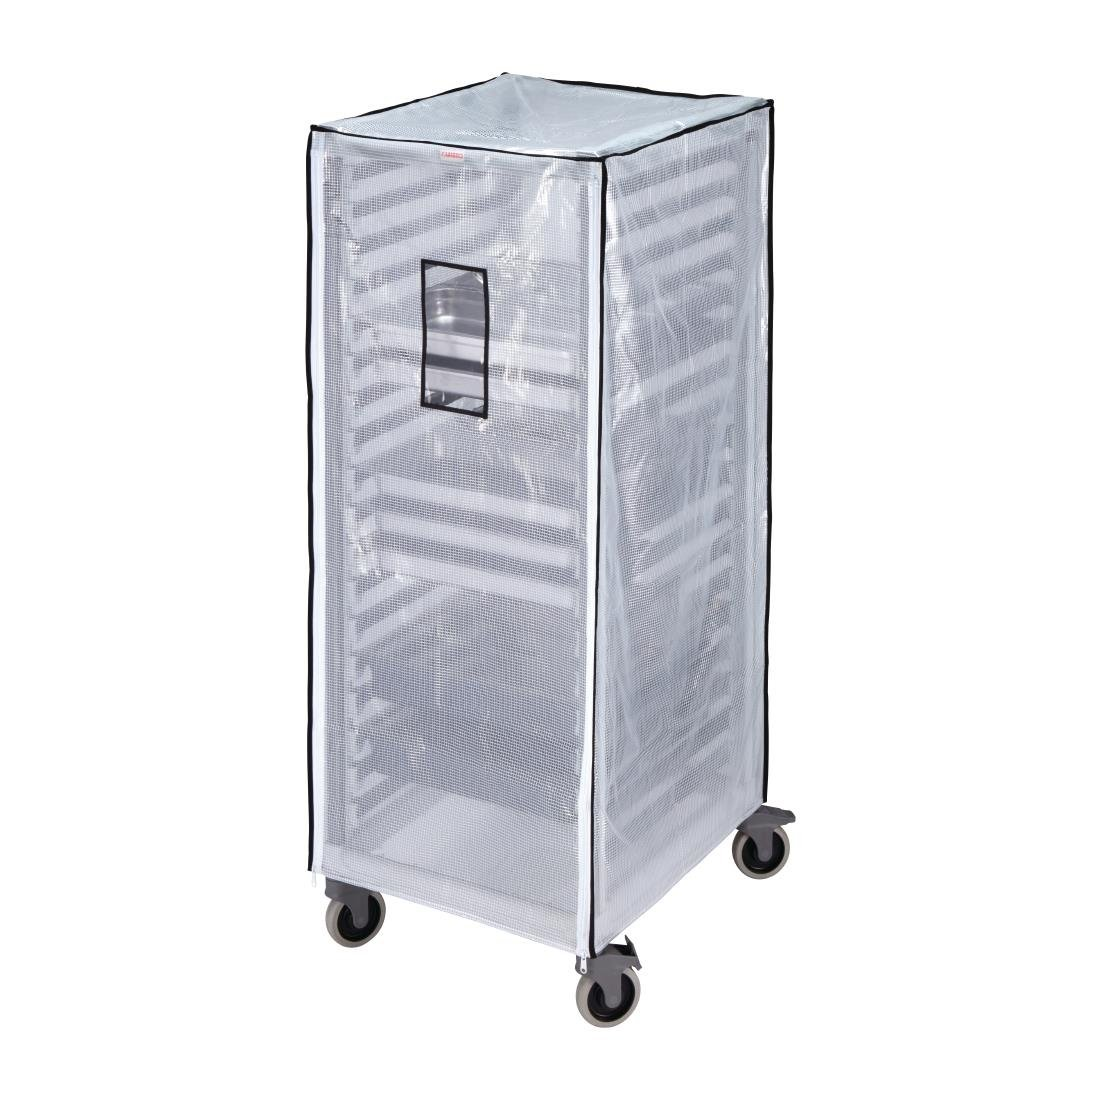 Image of Cambro 2/1 GN Tall Trolley Cover